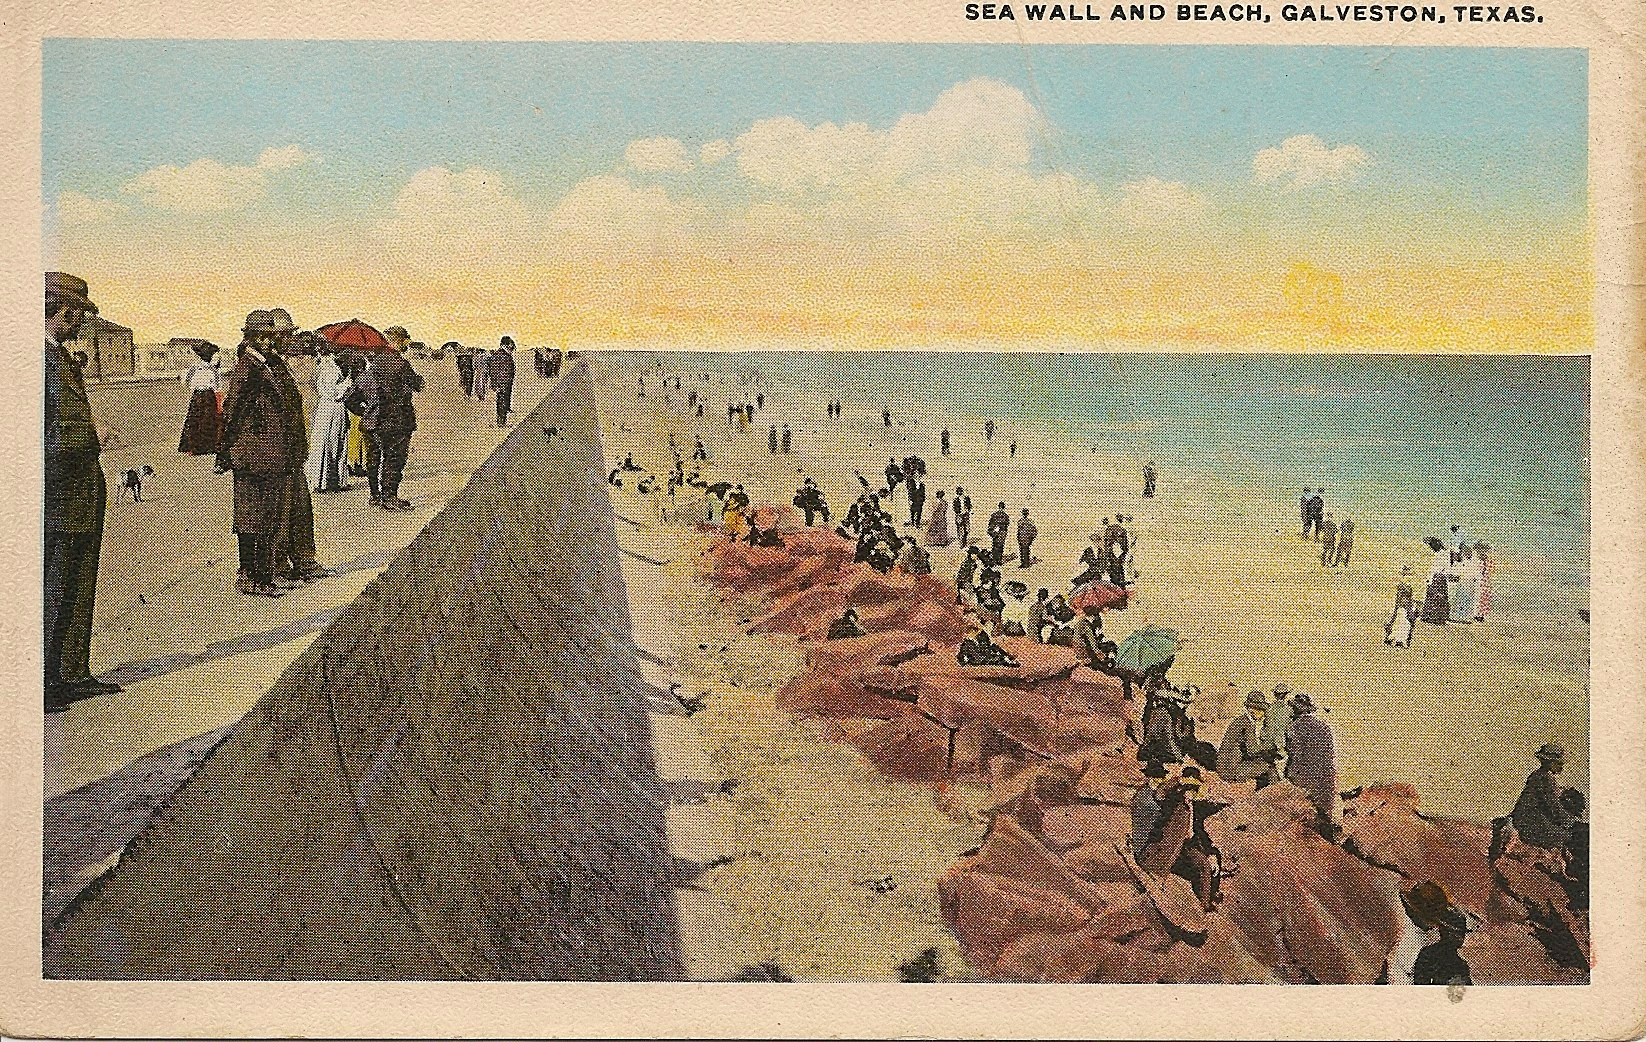 Seawall and Beach, Galveston, Tx Postcard